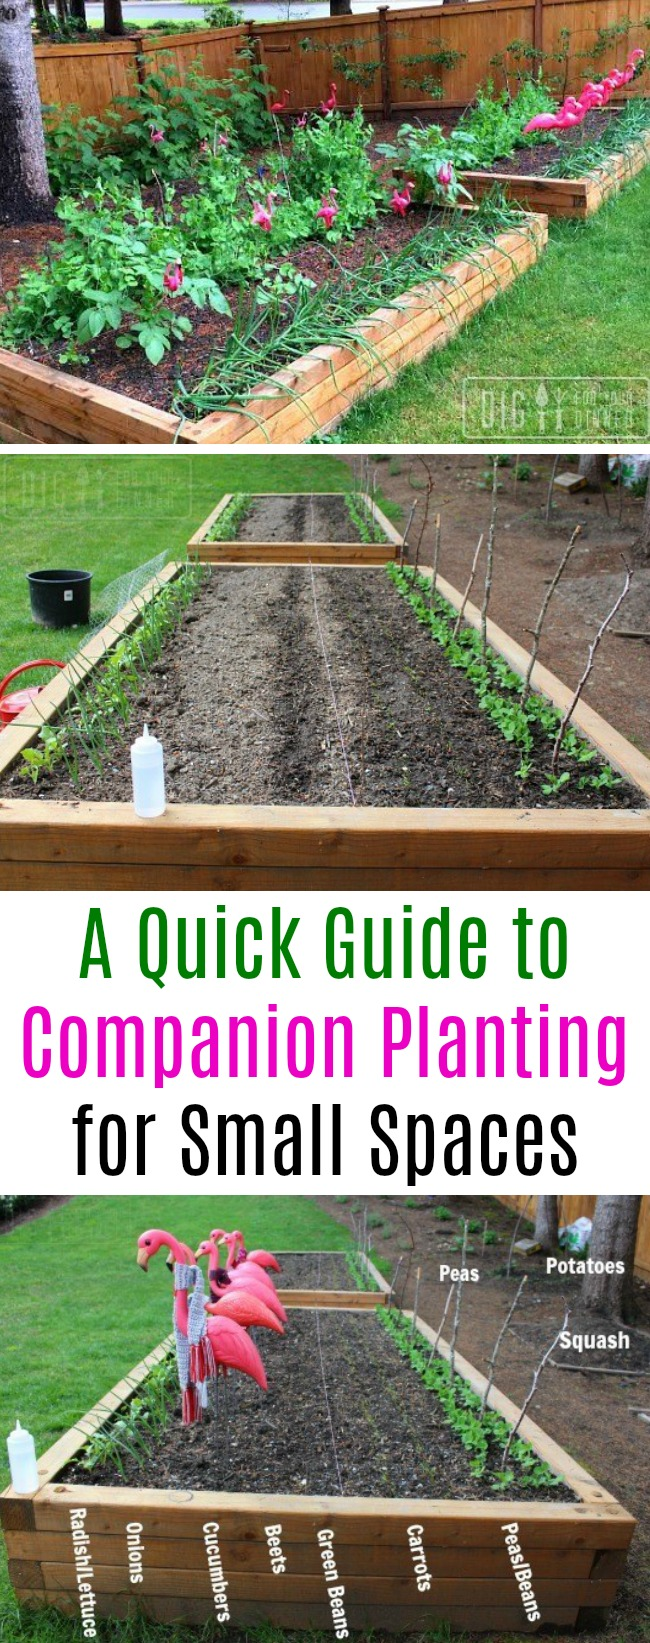 A Quick Guide to Companion Planting